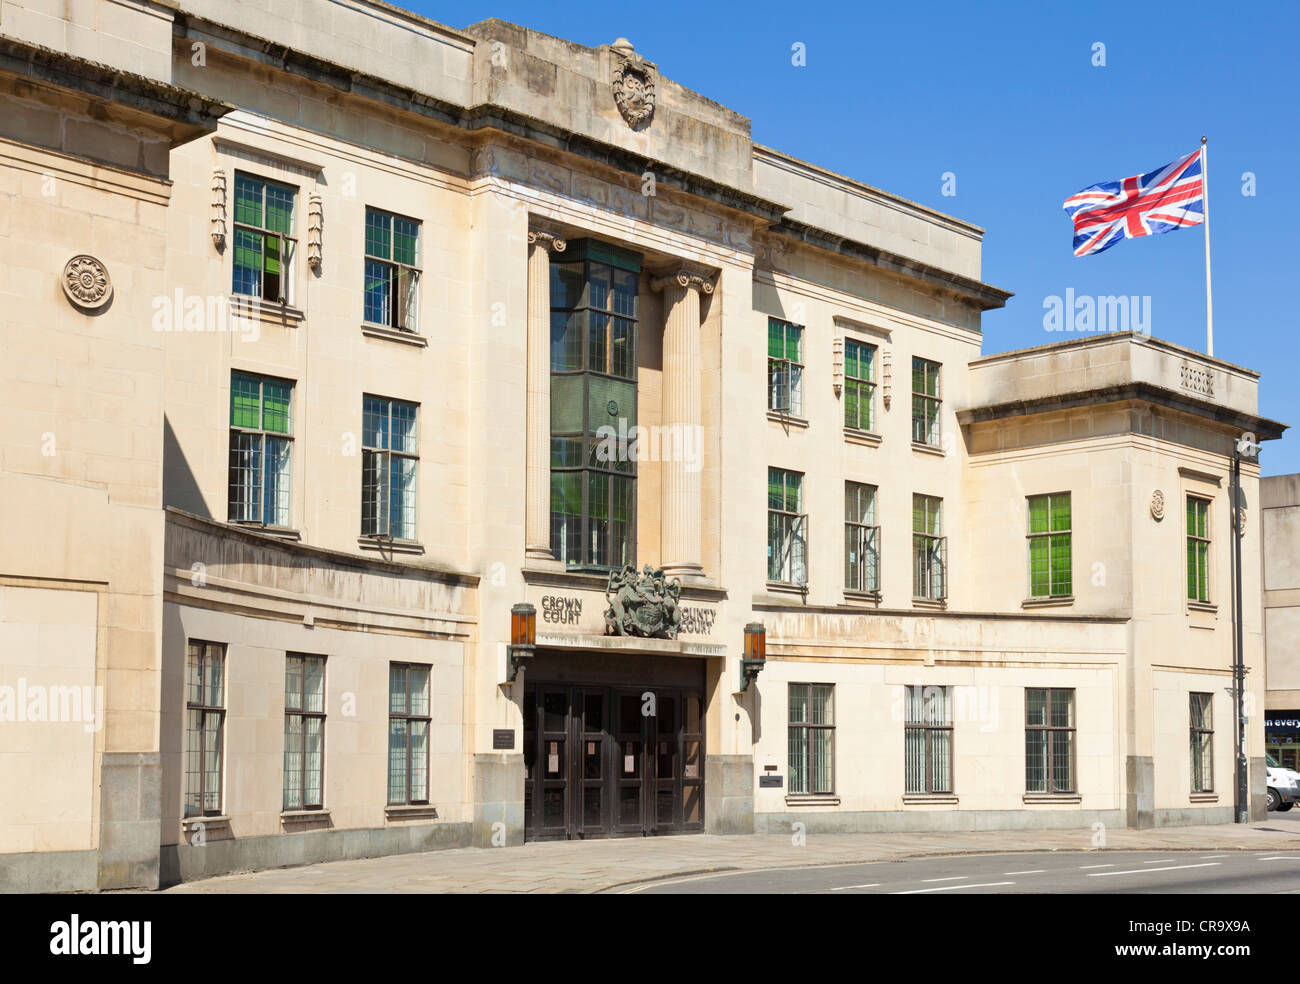 Oxford crown court Oxfordshire England GB UK EU Europe - Stock Image